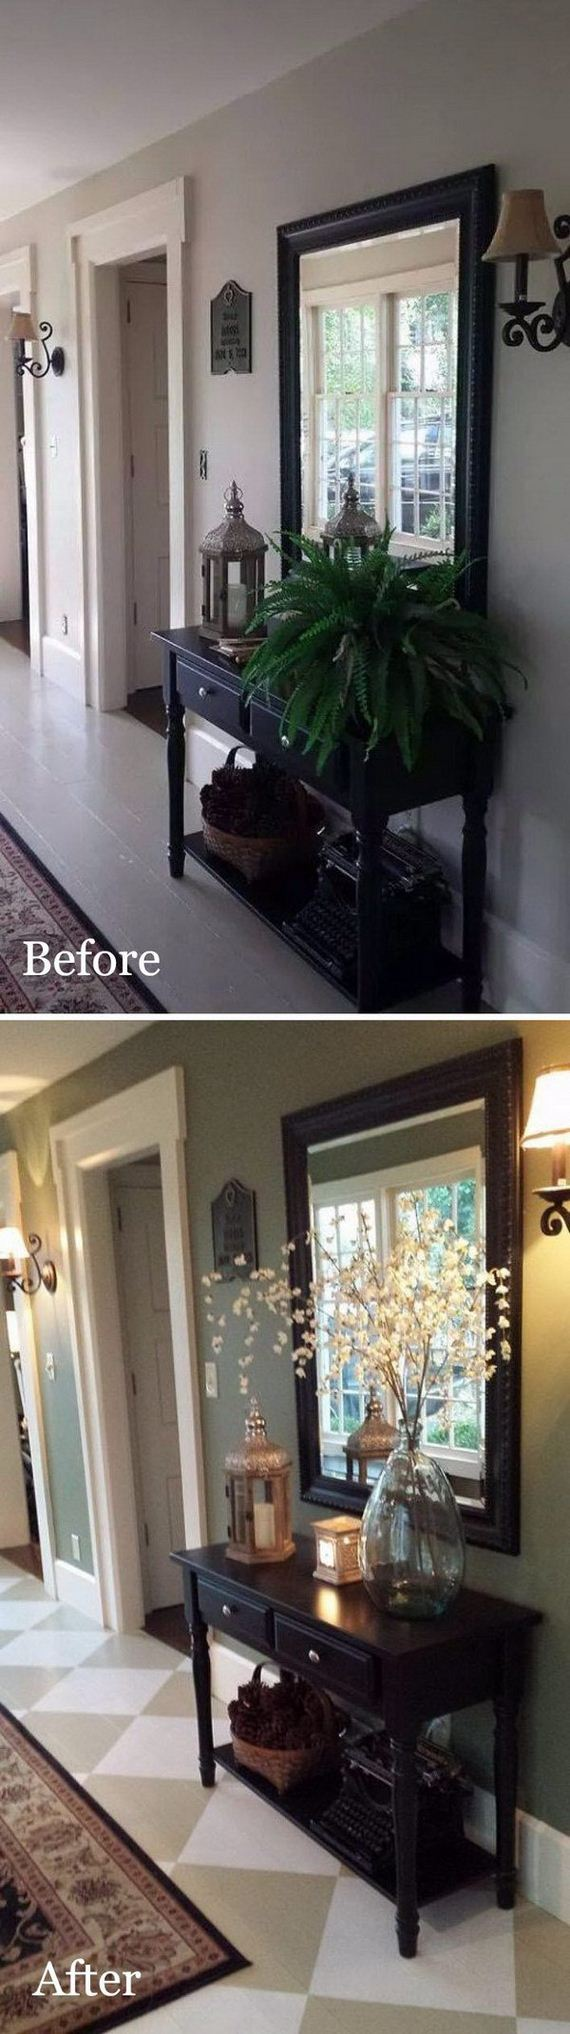 28-amazing-entryway-makeover